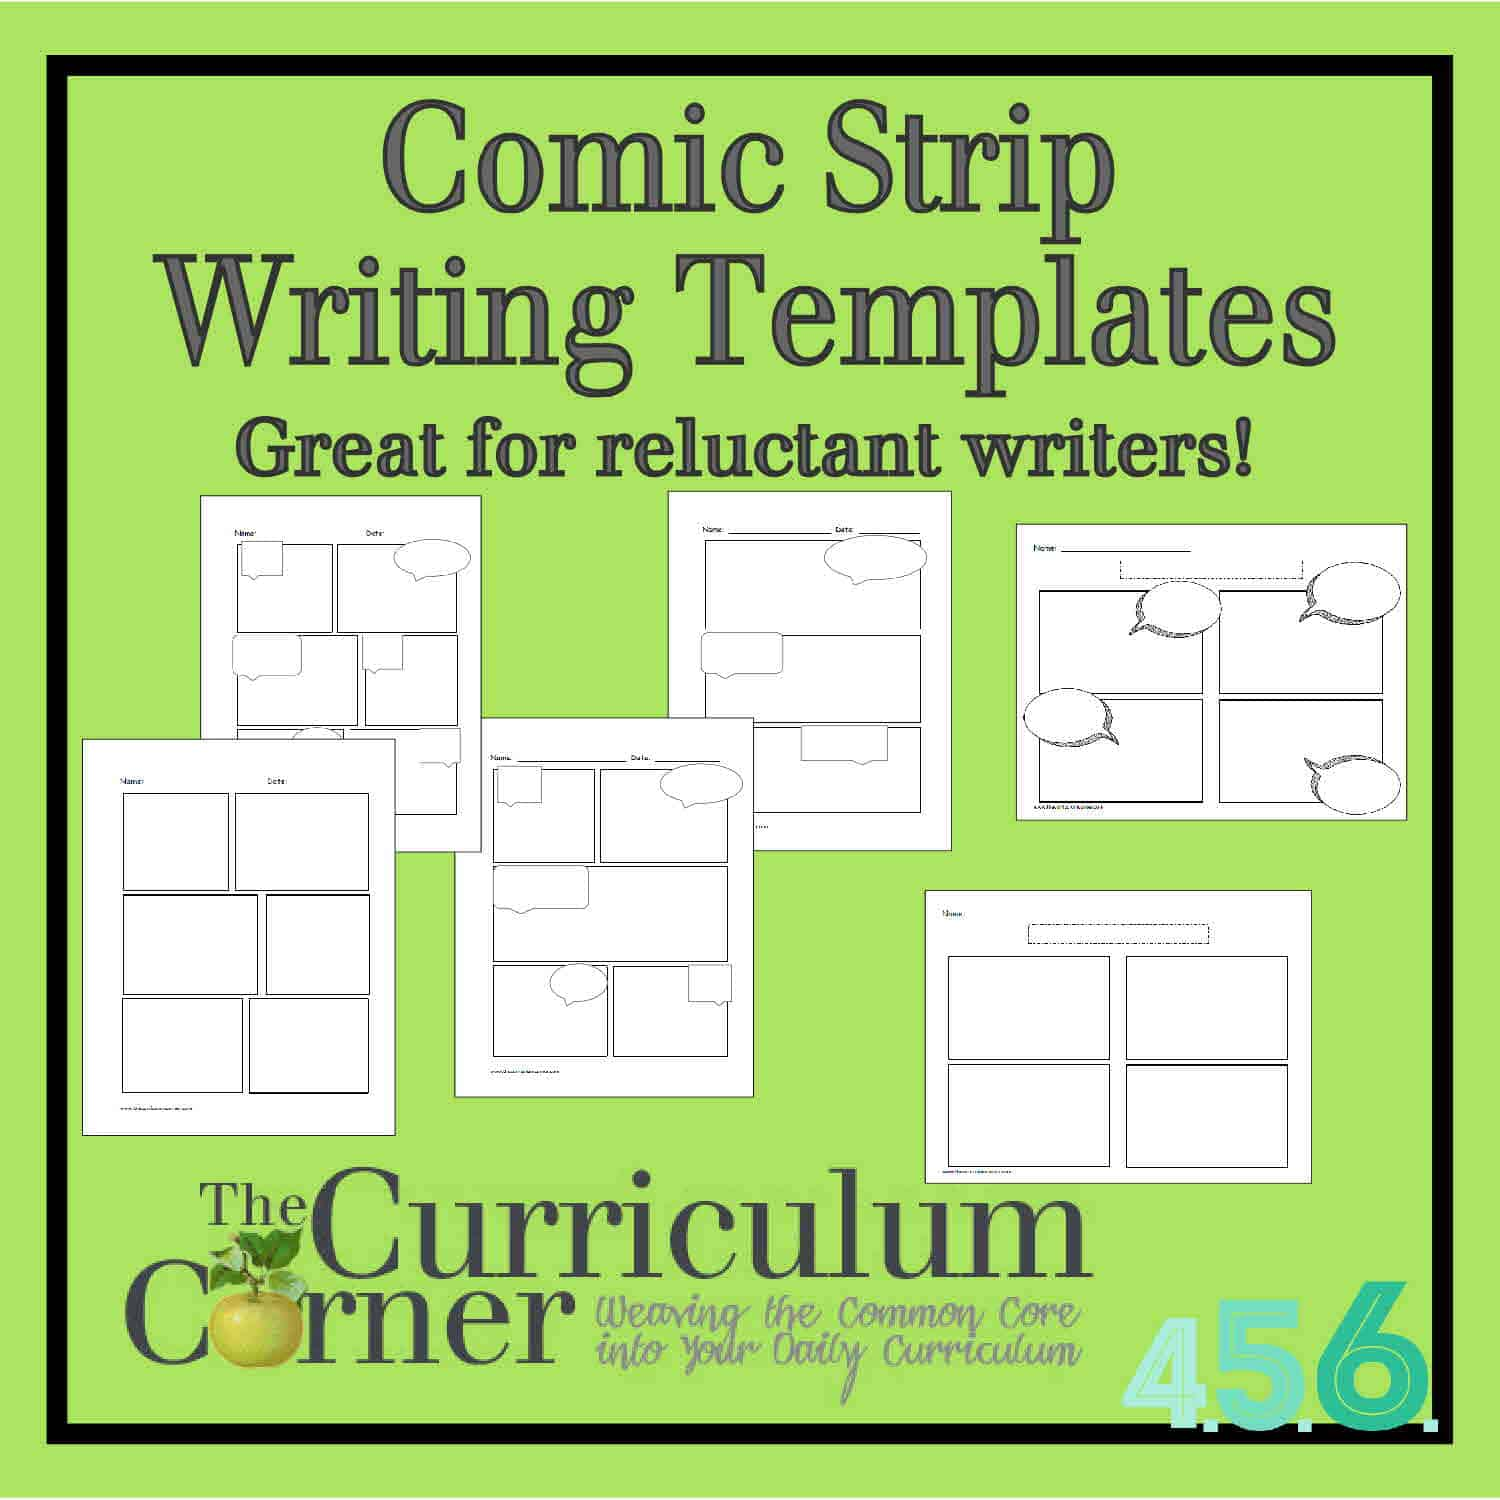 Comic Strip Writing Templates